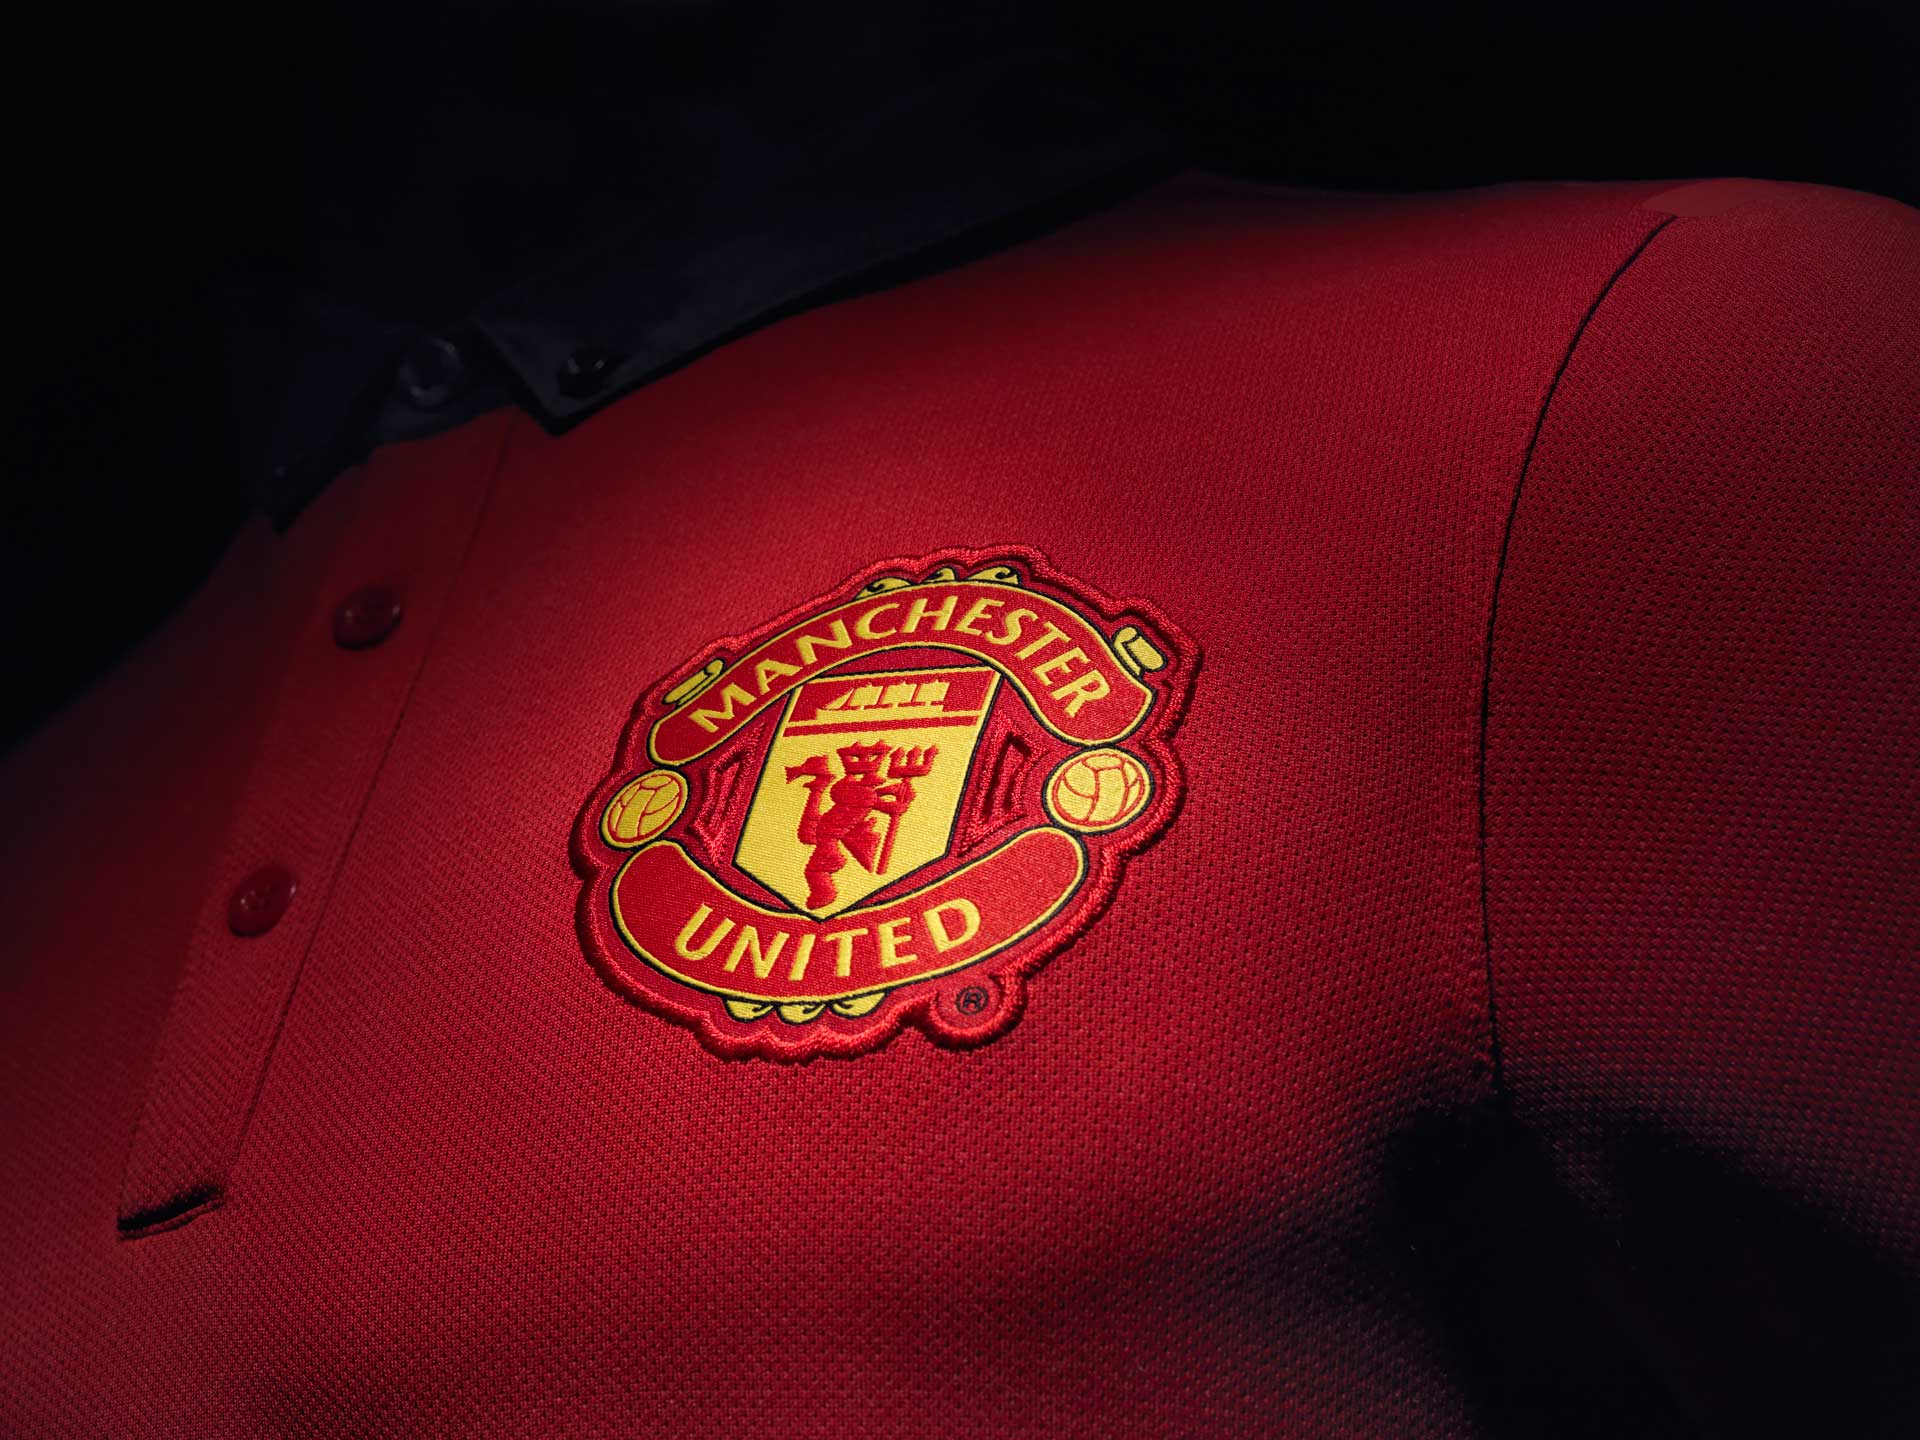 Manchester United crest logo in the jersey 2014 2015 wallpaper 1920x1440